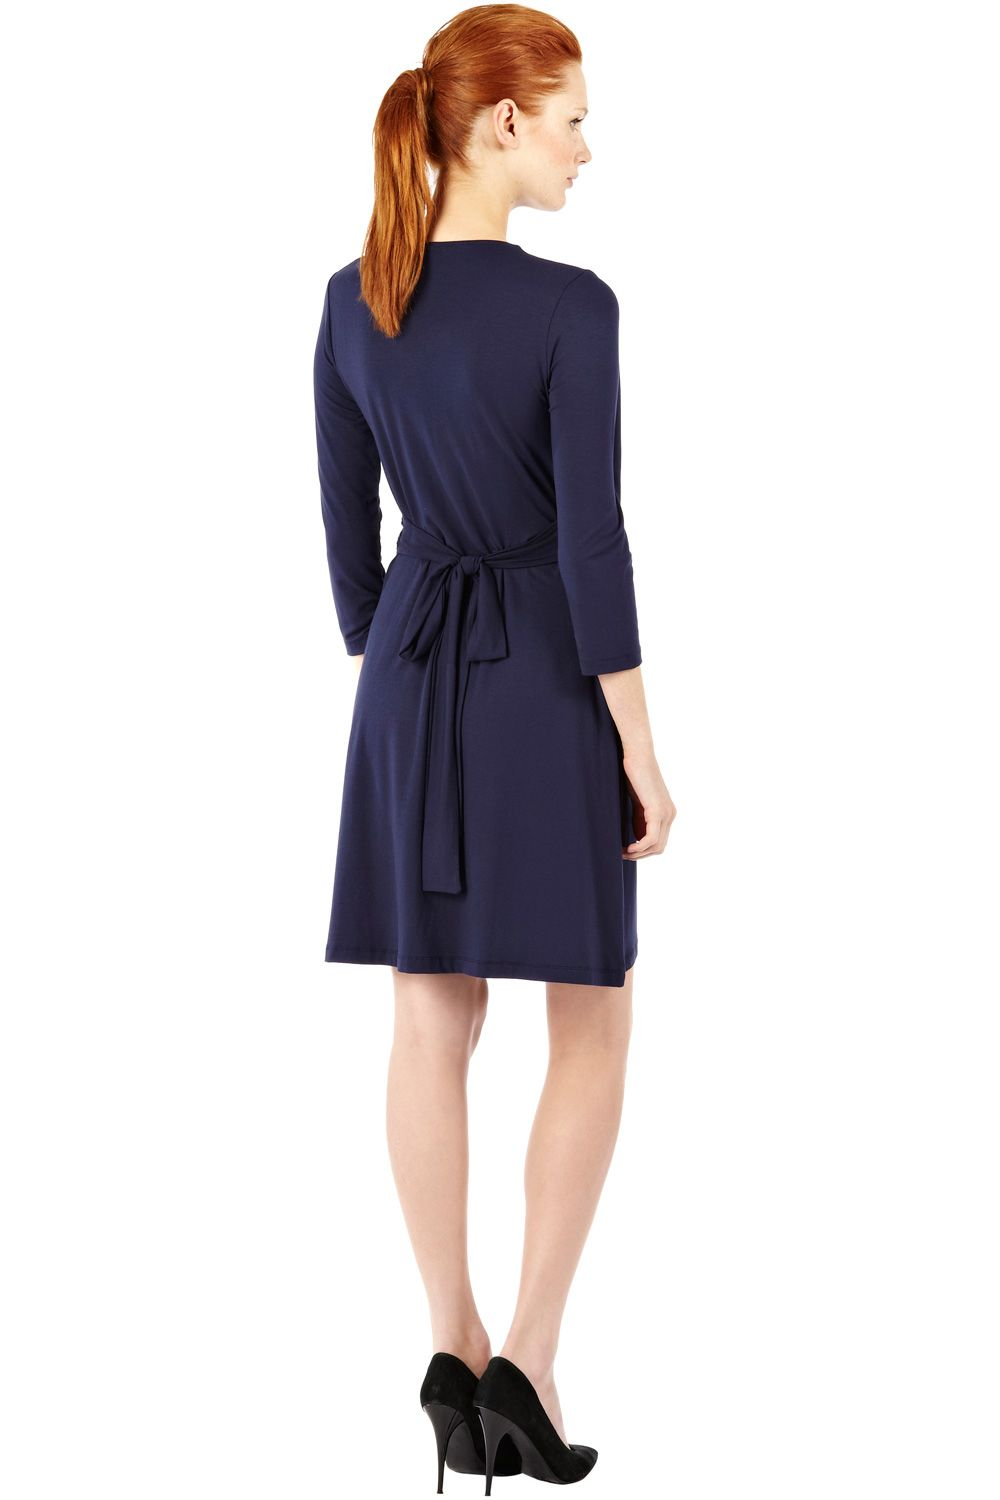 Wrap tie dress